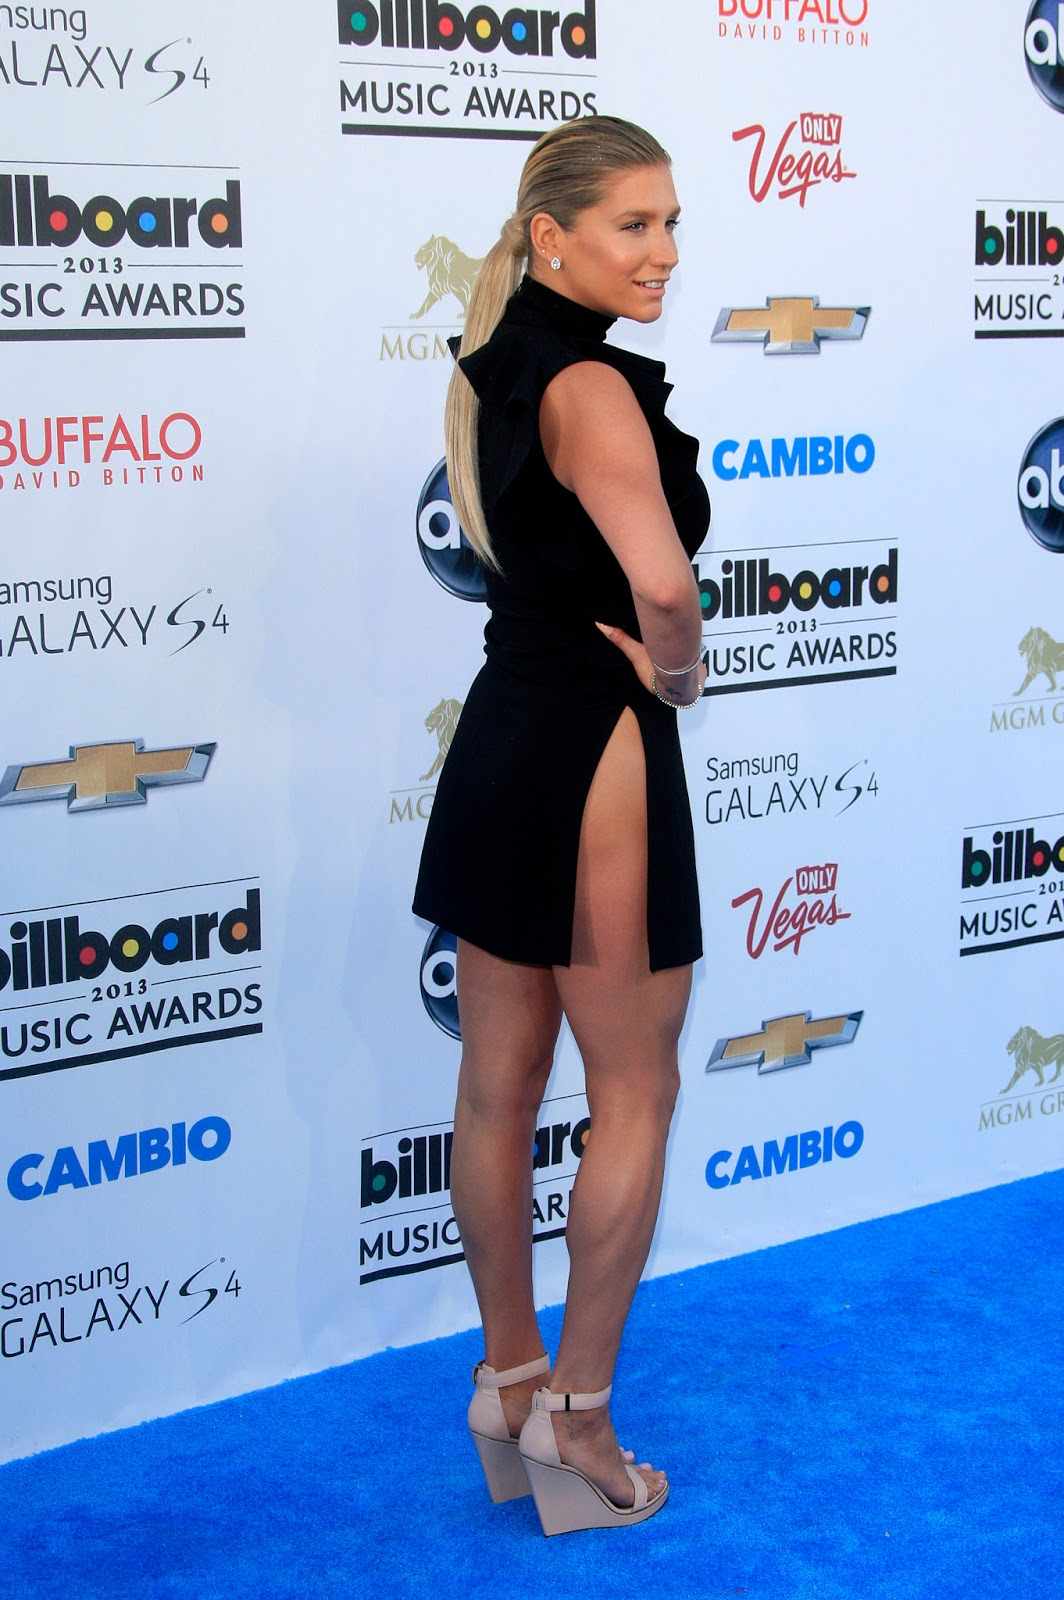 Kesha In A Revealing Dress At 2013 Billboard Music Awards